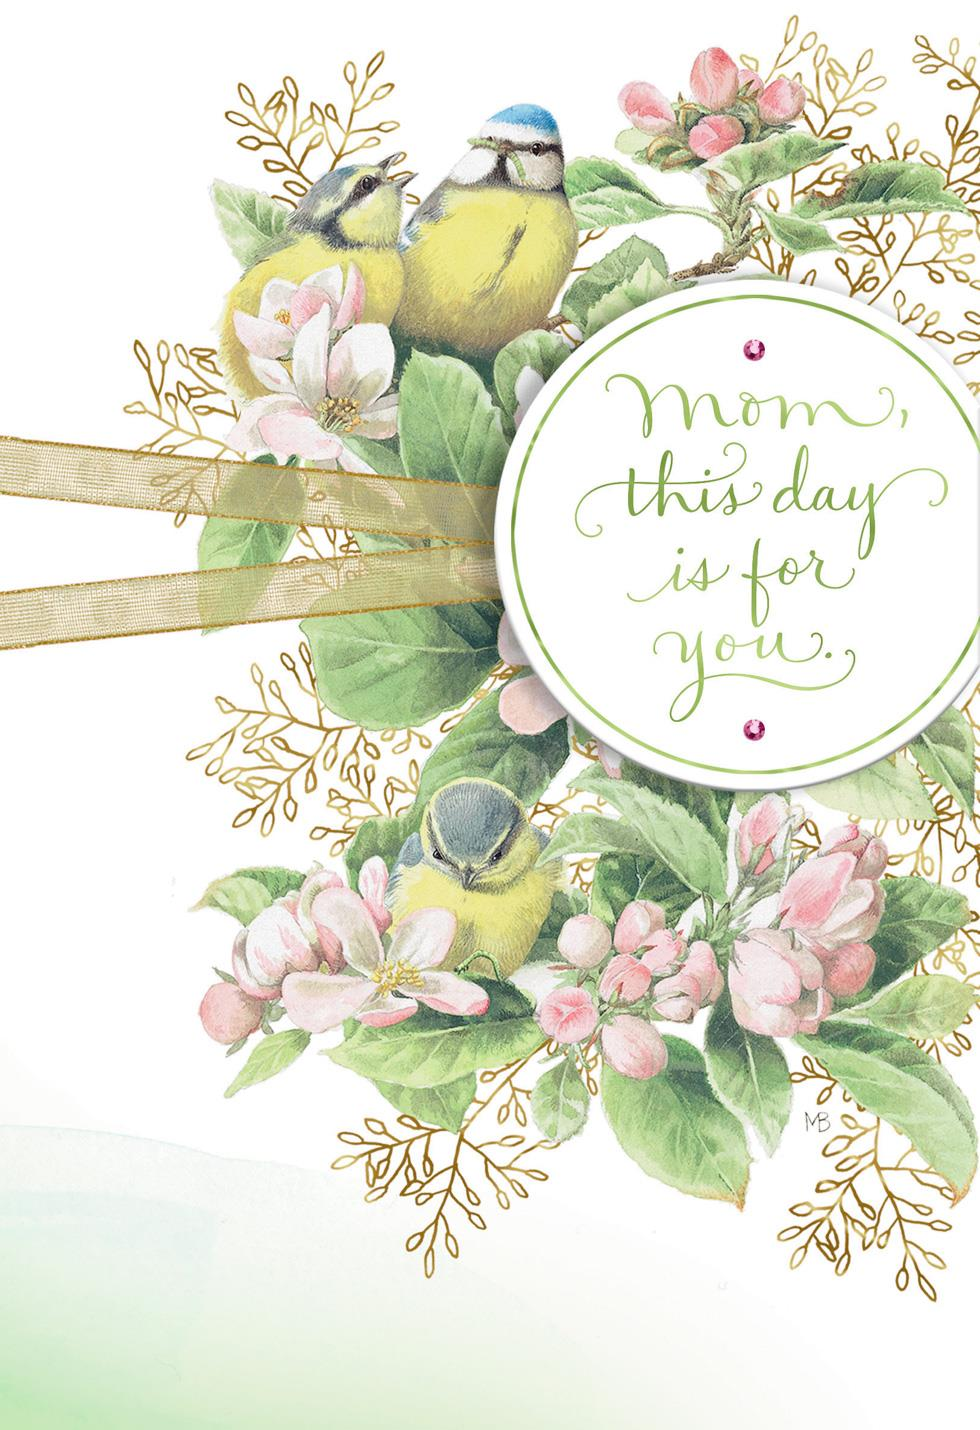 Marjolein bastin this day is for you mothers day card greeting marjolein bastin this day is for you mothers day card m4hsunfo